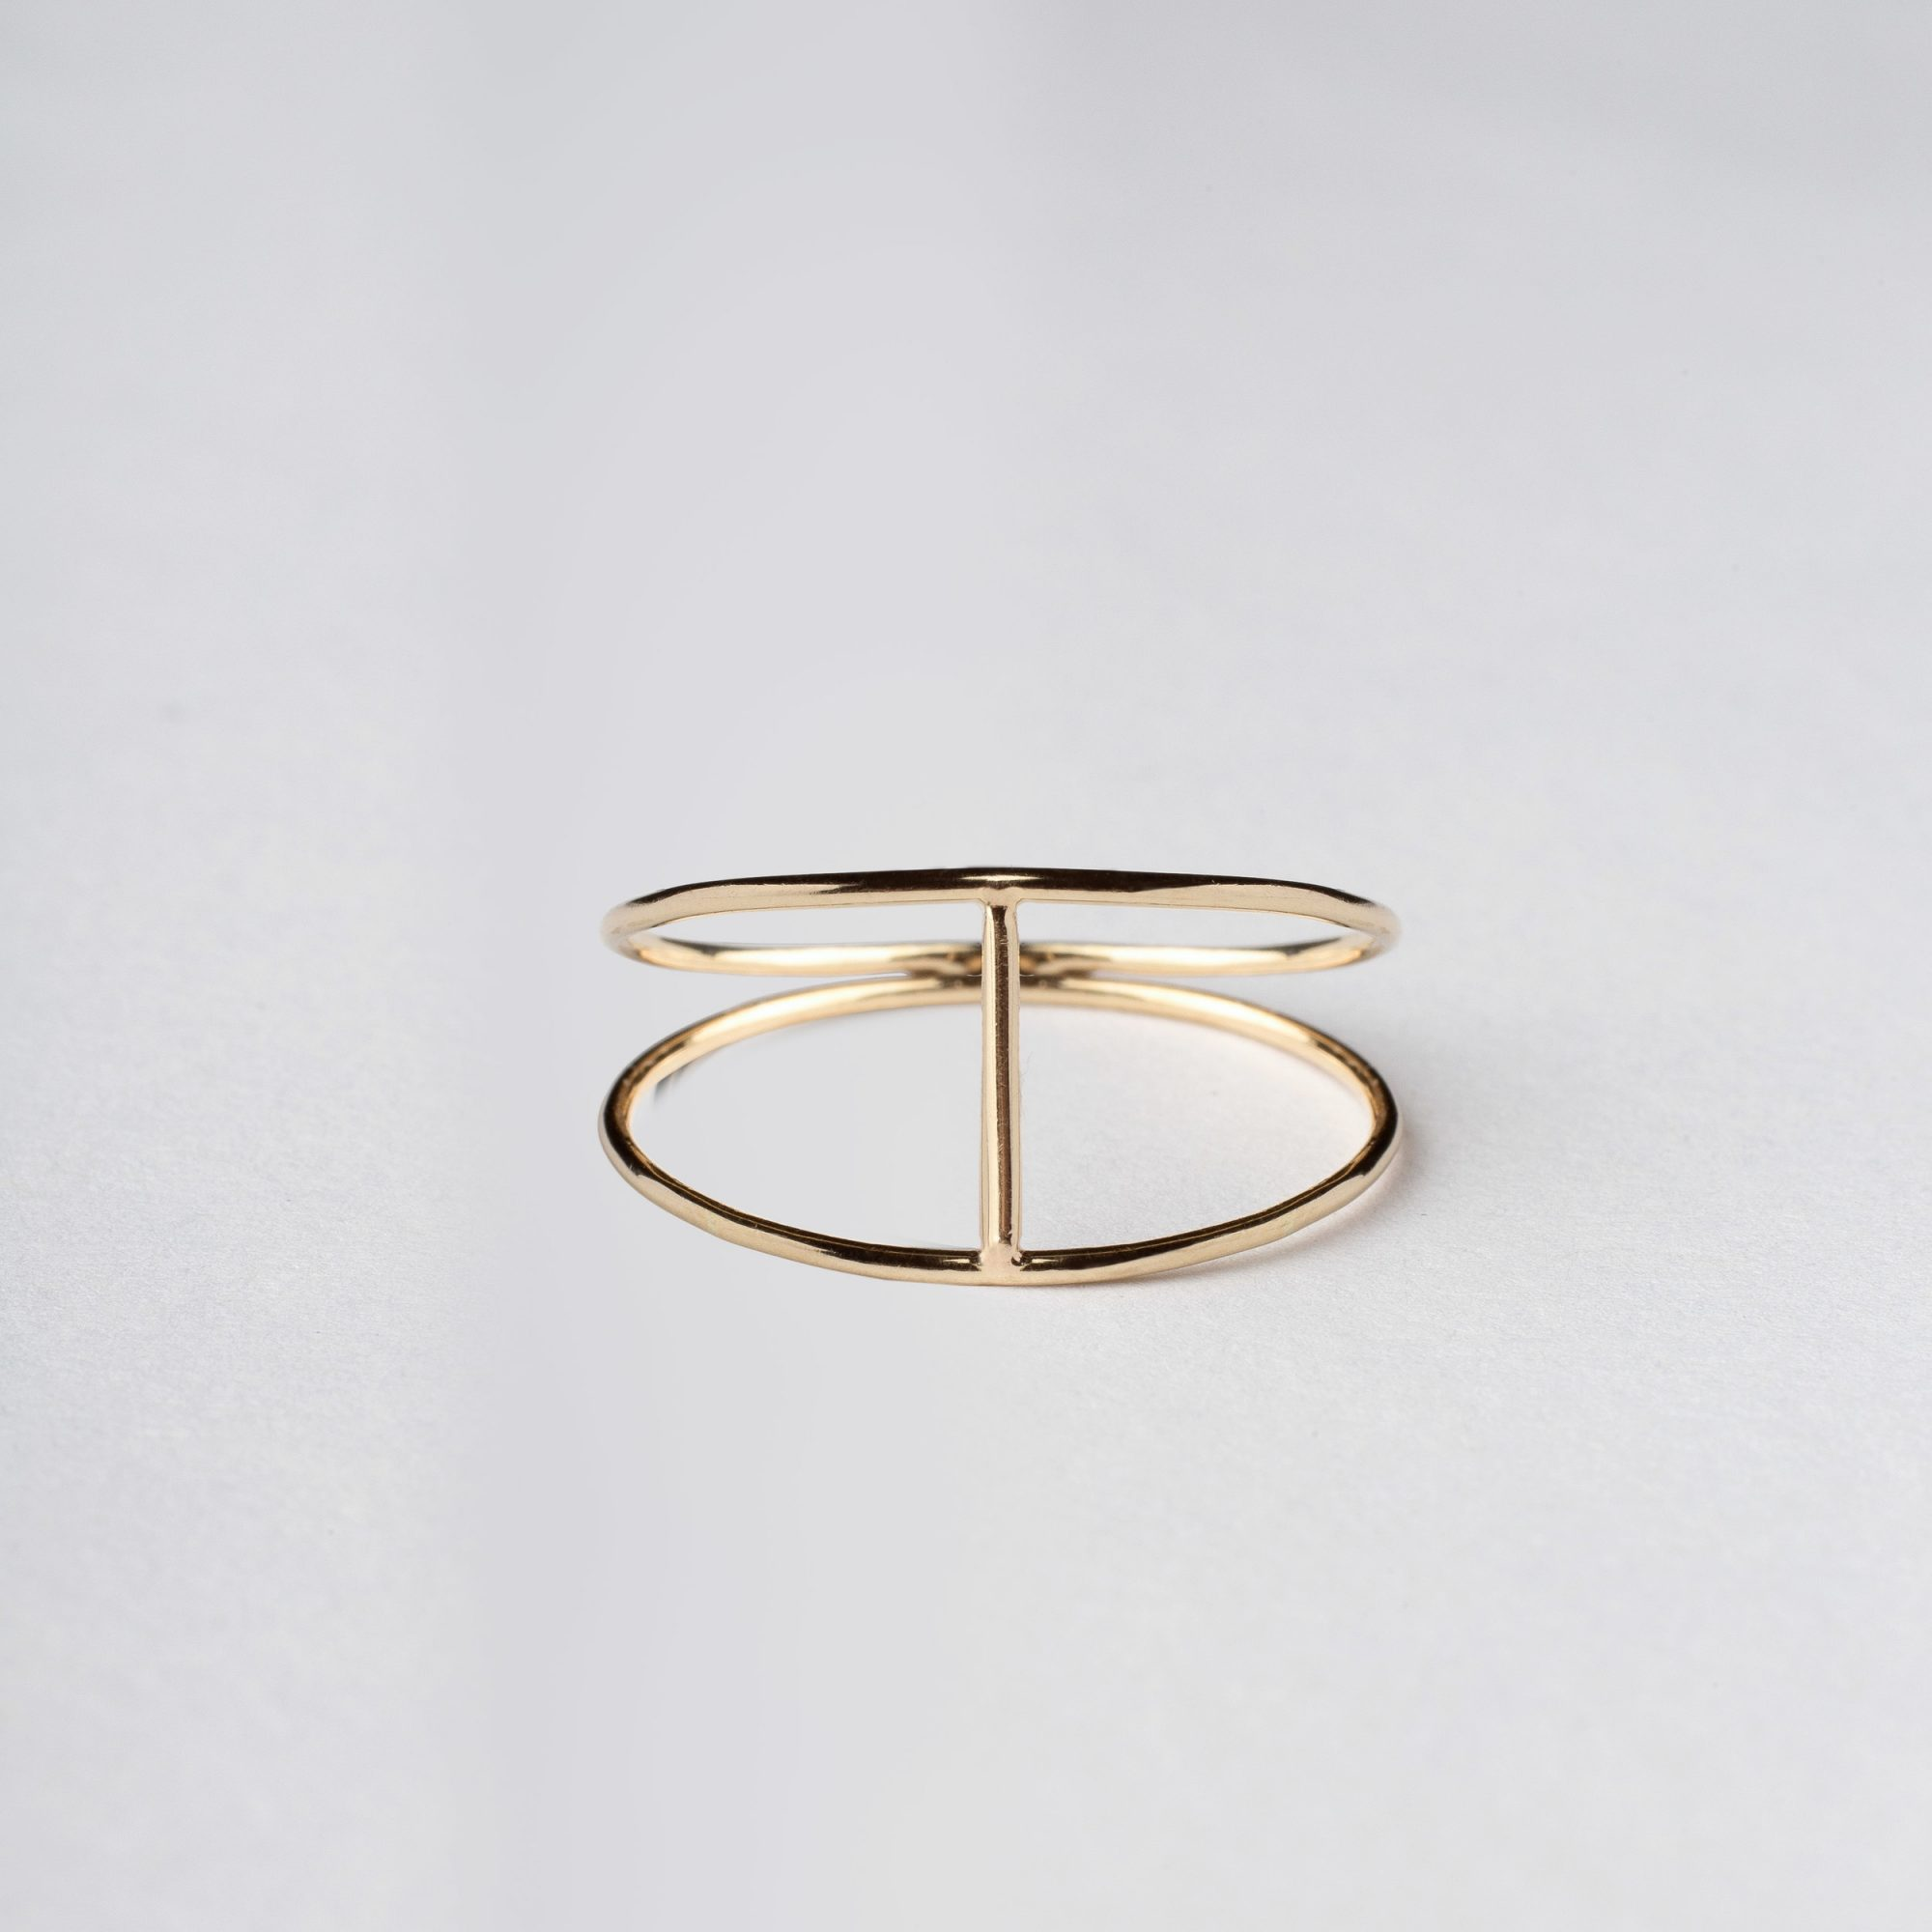 AM Thorne Silhouette ring